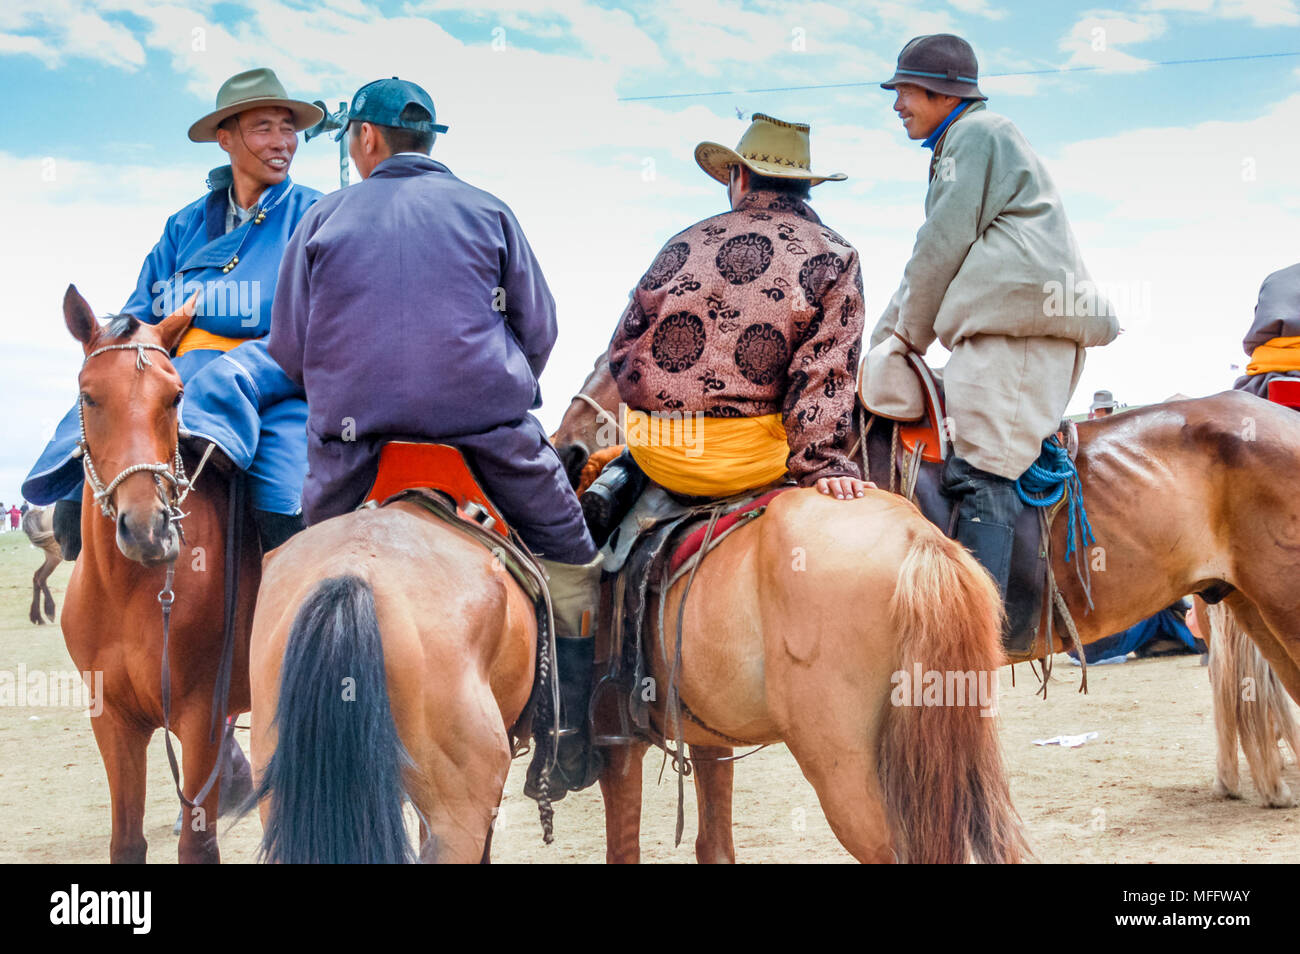 Khui Doloon Khudag, Mongolia - July 12, 2010: Horsemen in traditional costume at Nadaam horse race on steppe outside capital Ulaanbaatar - Stock Image